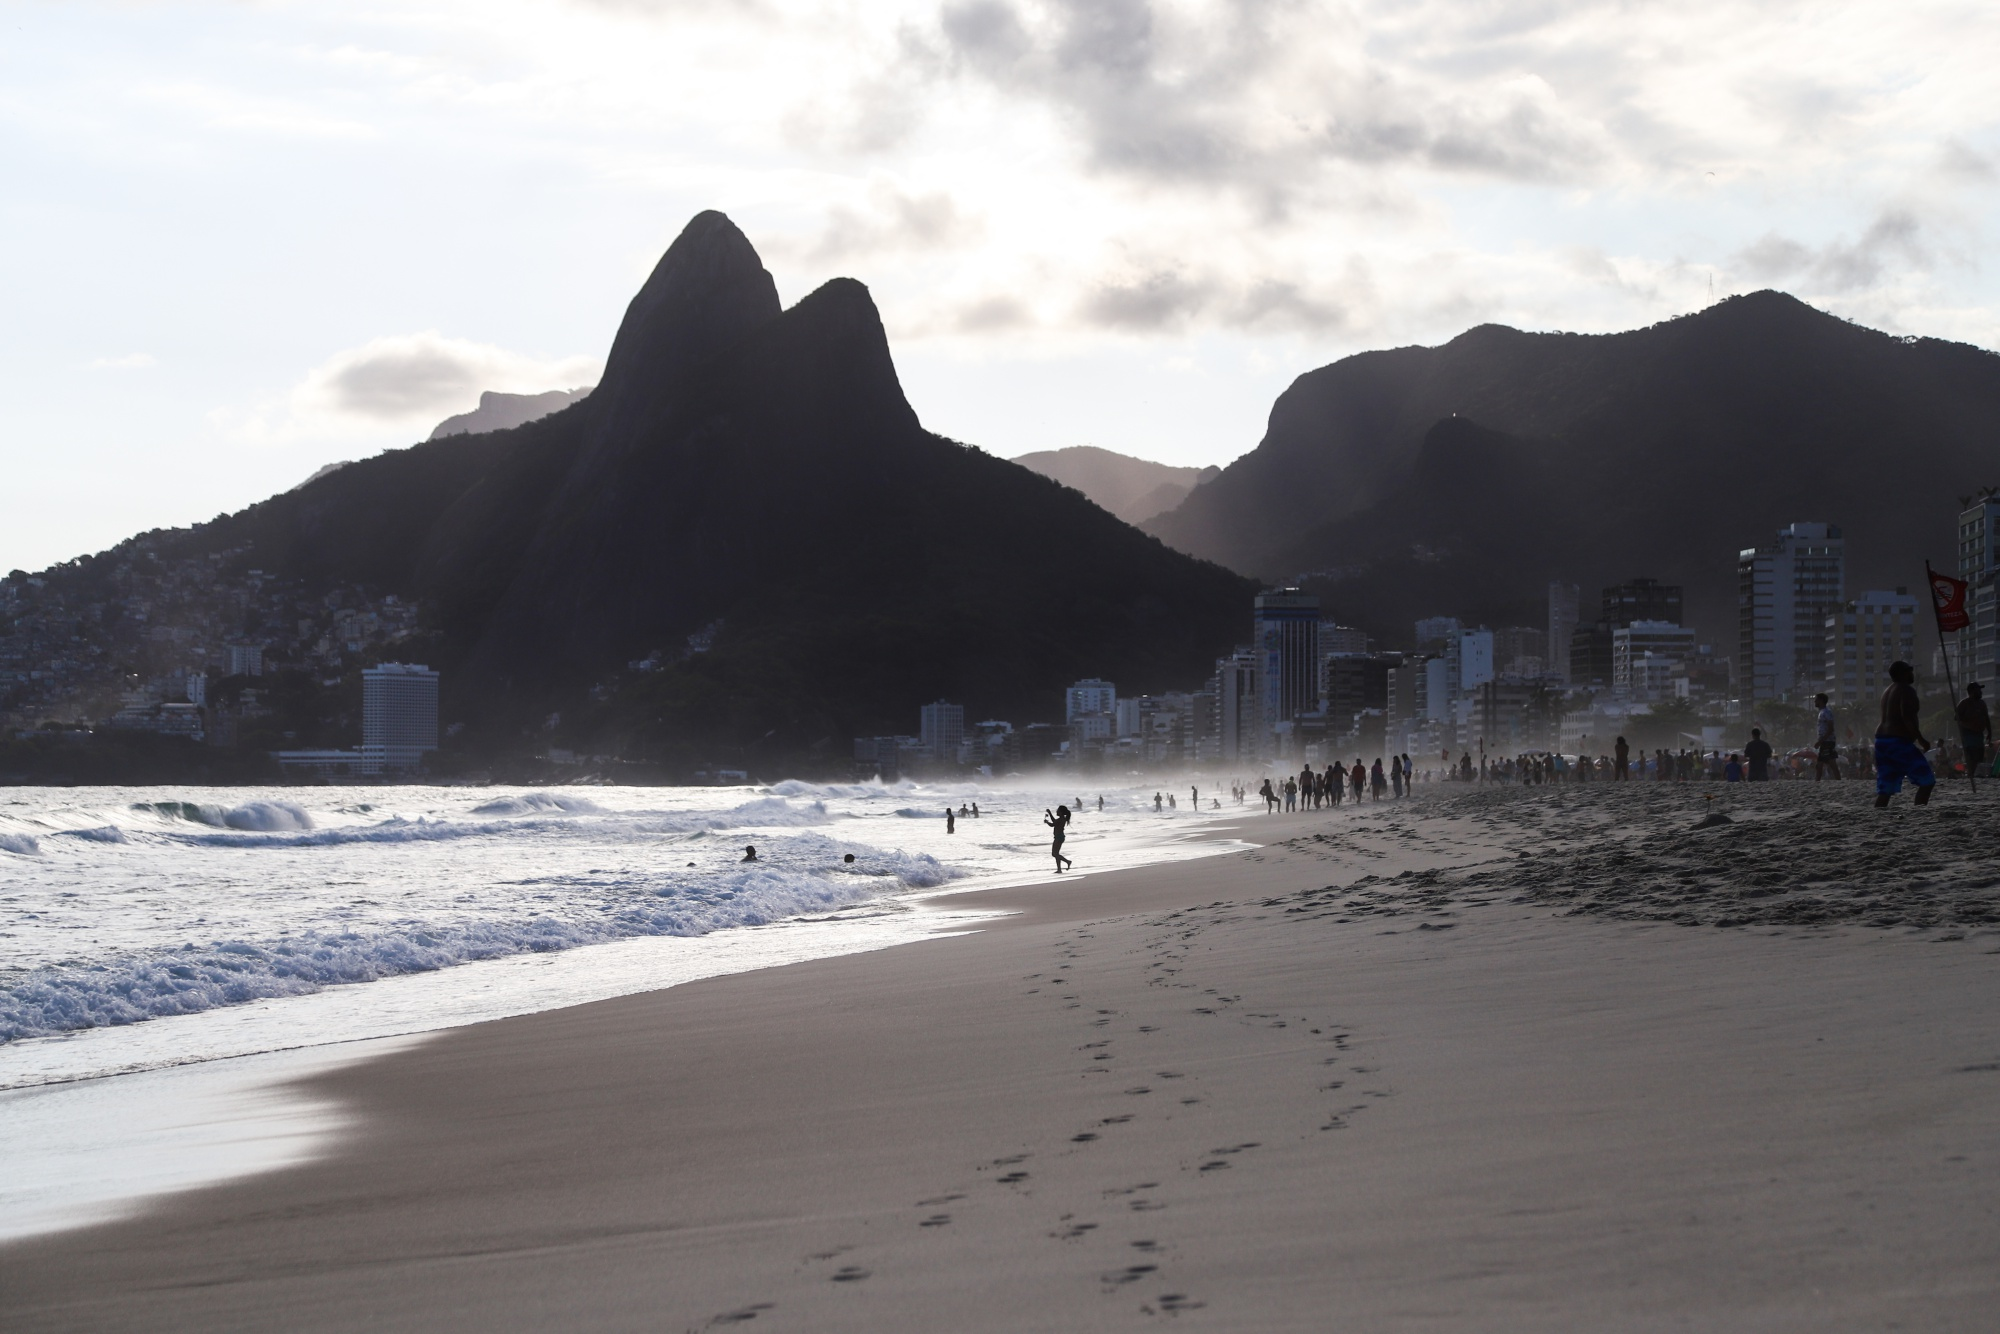 bloomberg.com - Vinicius Andrade - Franklin Templeton Considers Buying an Asset Manager in Brazil